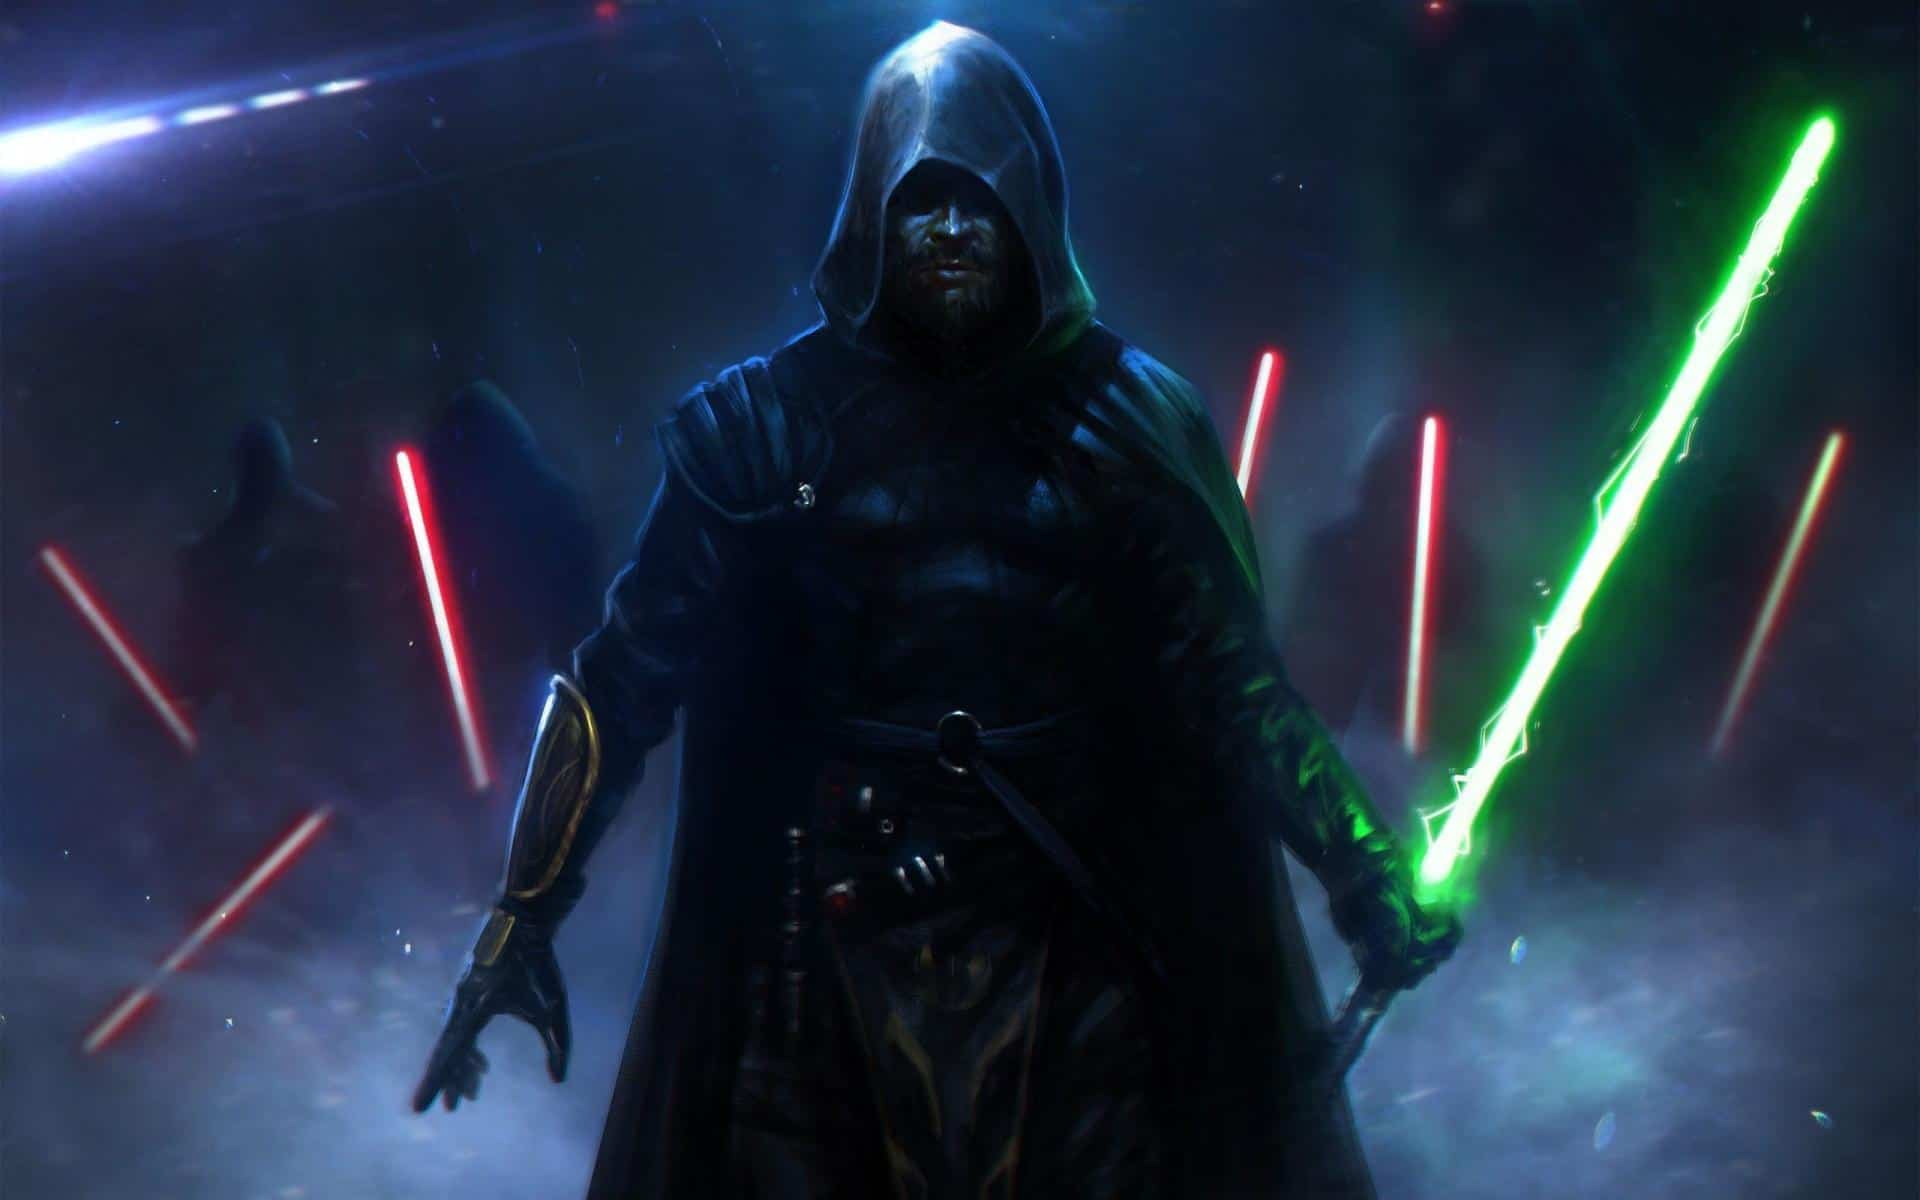 What We Know About Star Wars Jedi Fallen Order So Far